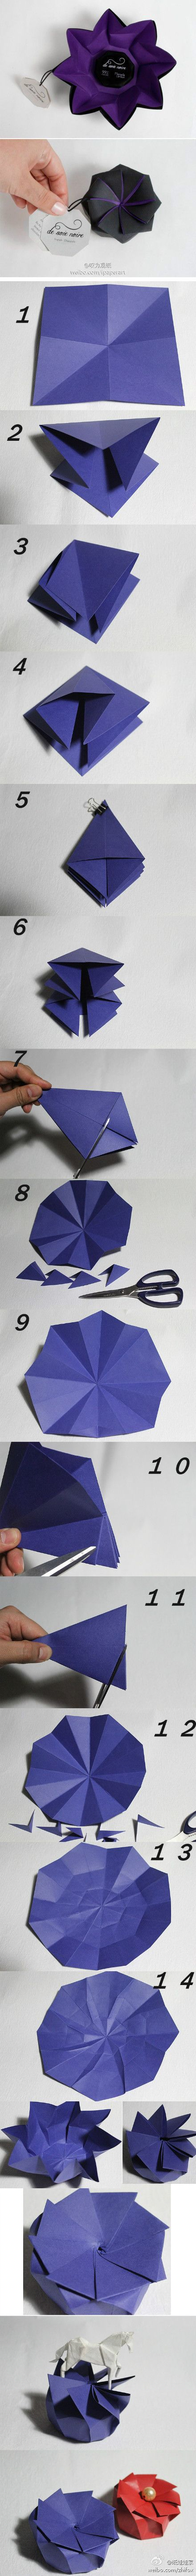 Origami pop up box template PD